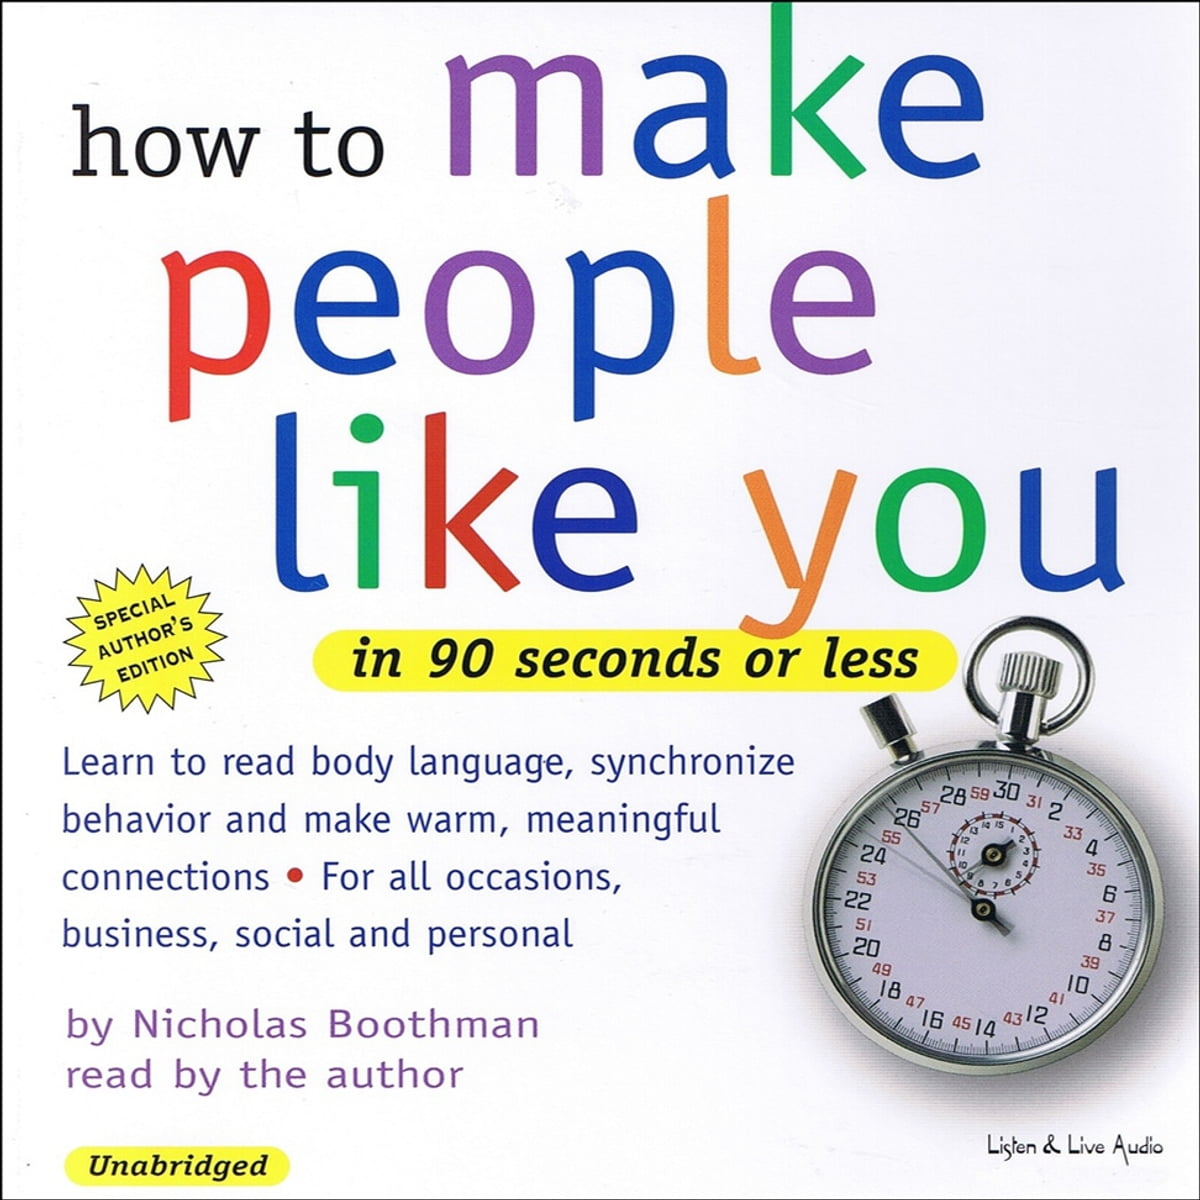 How To Make People Like You In 90 Seconds or Less Audiobook by Nicholas  Boothman - 9781593163204 | Rakuten Kobo United States